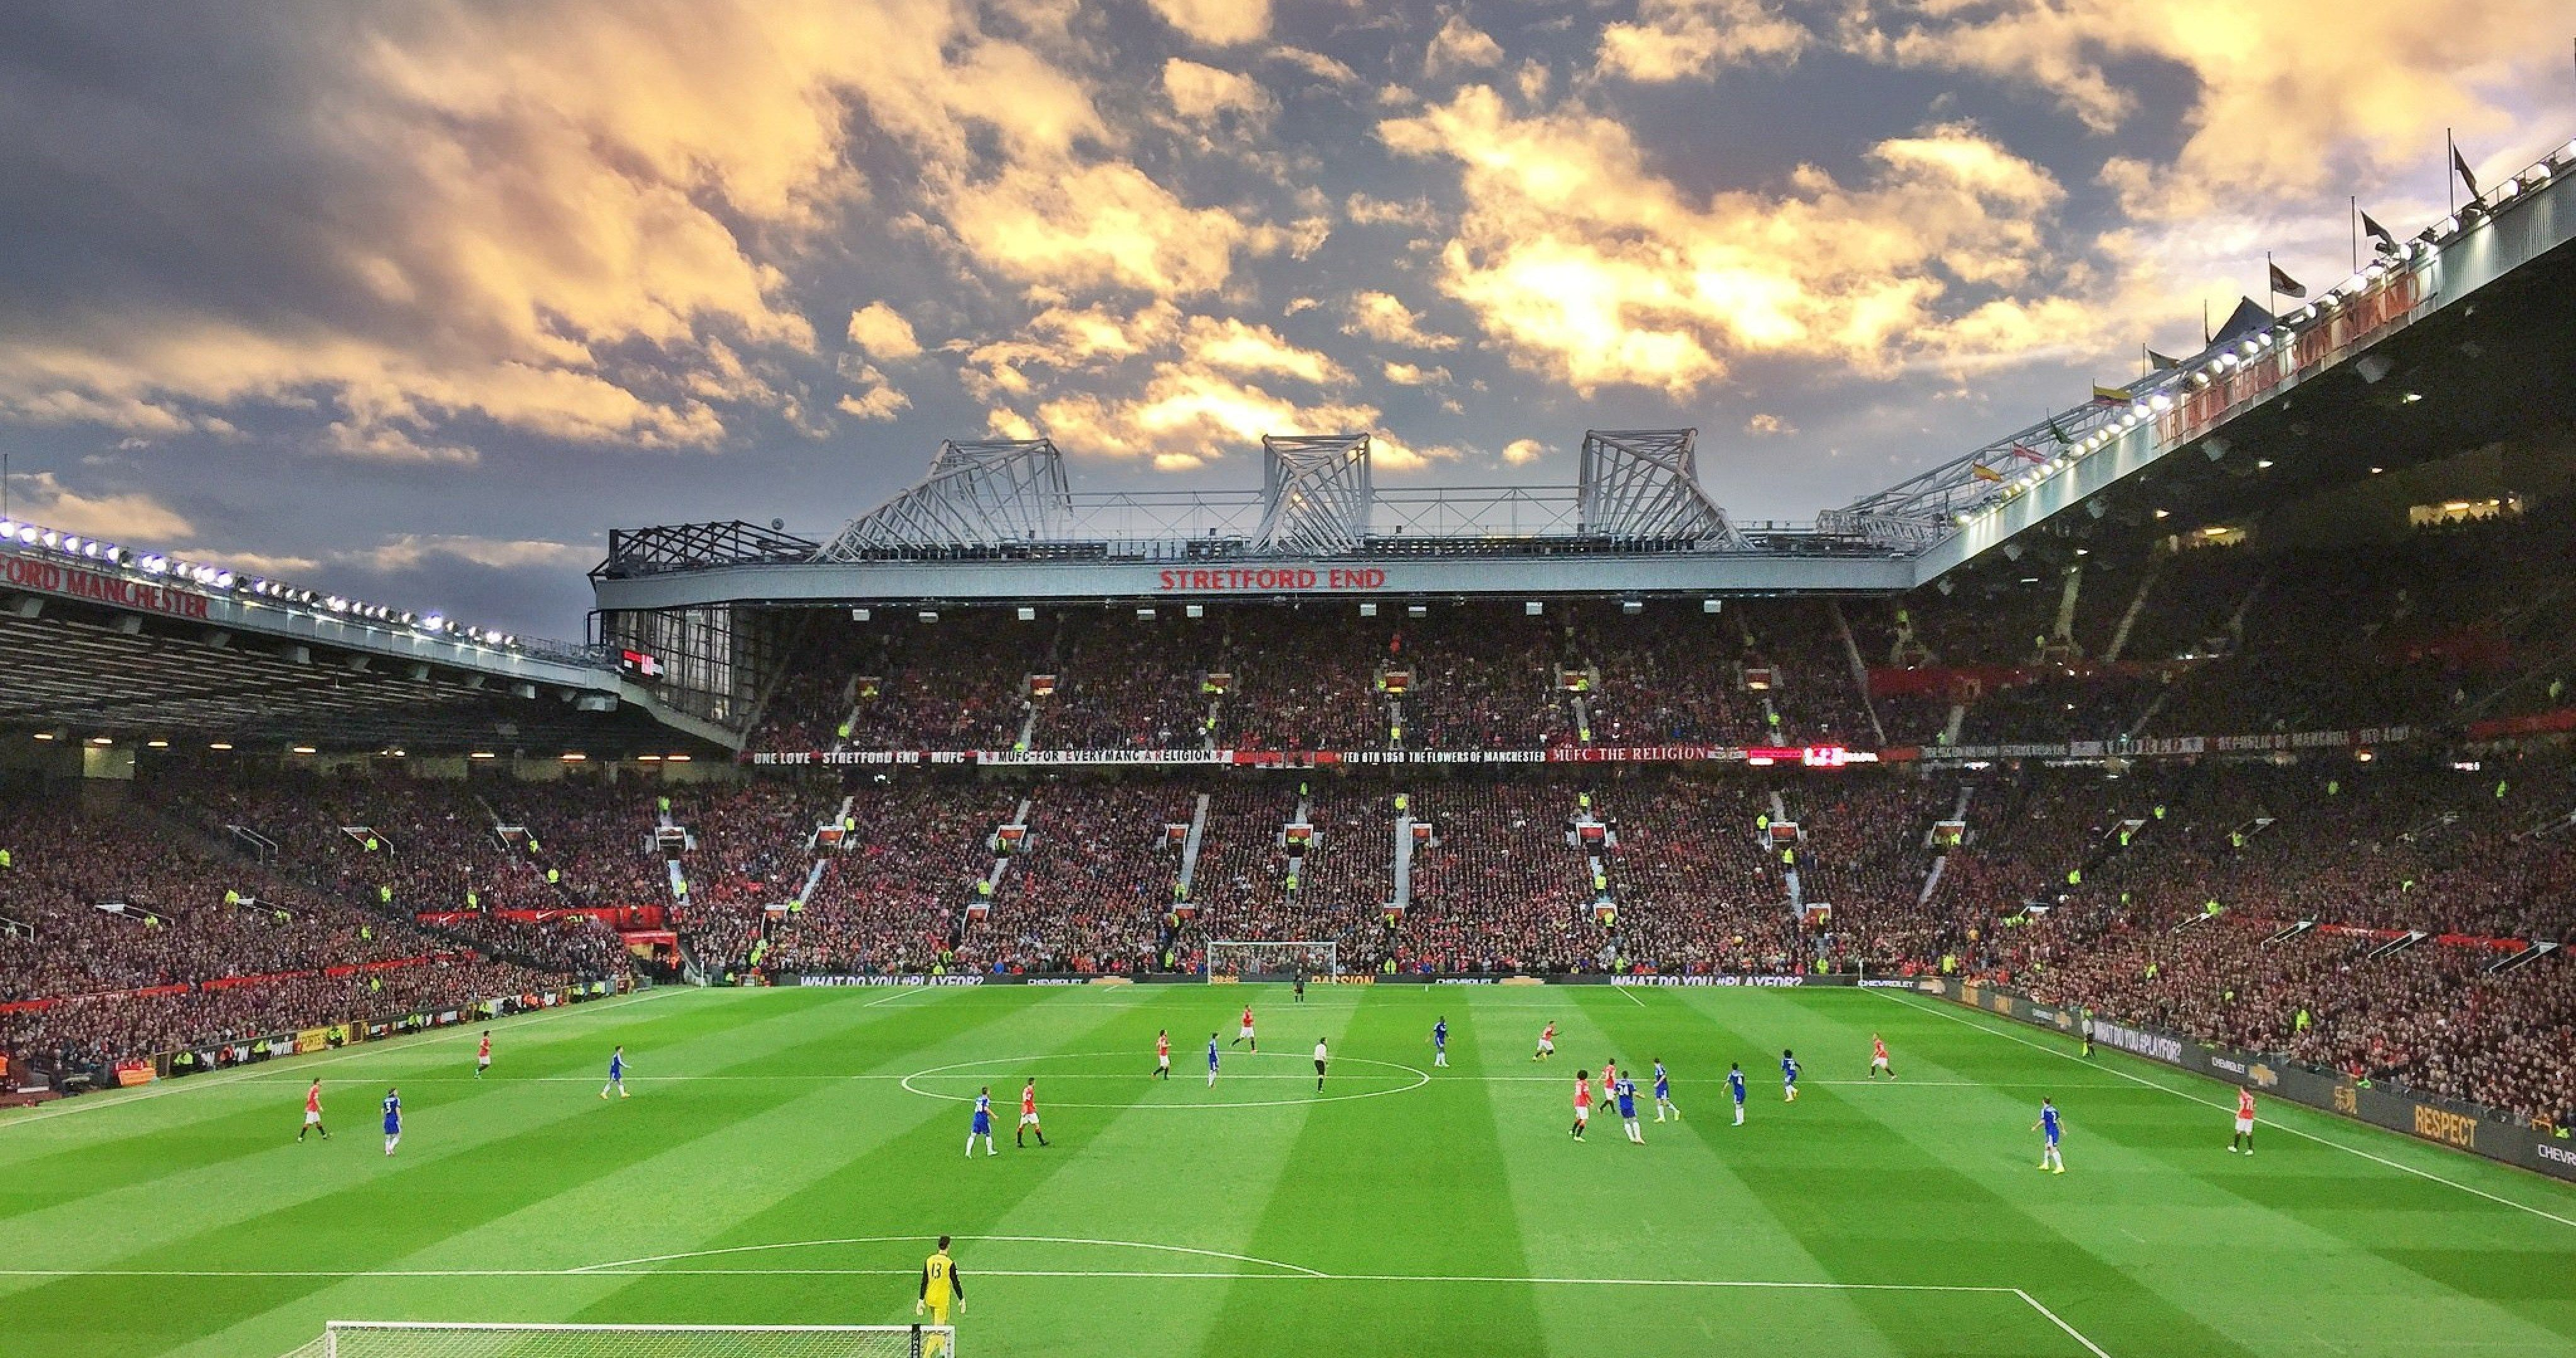 List of Good Looking Manchester United Wallpapers Hd Wallpaper 55+ Manchester United 4K Wallpapers - Download at WallpaperBro